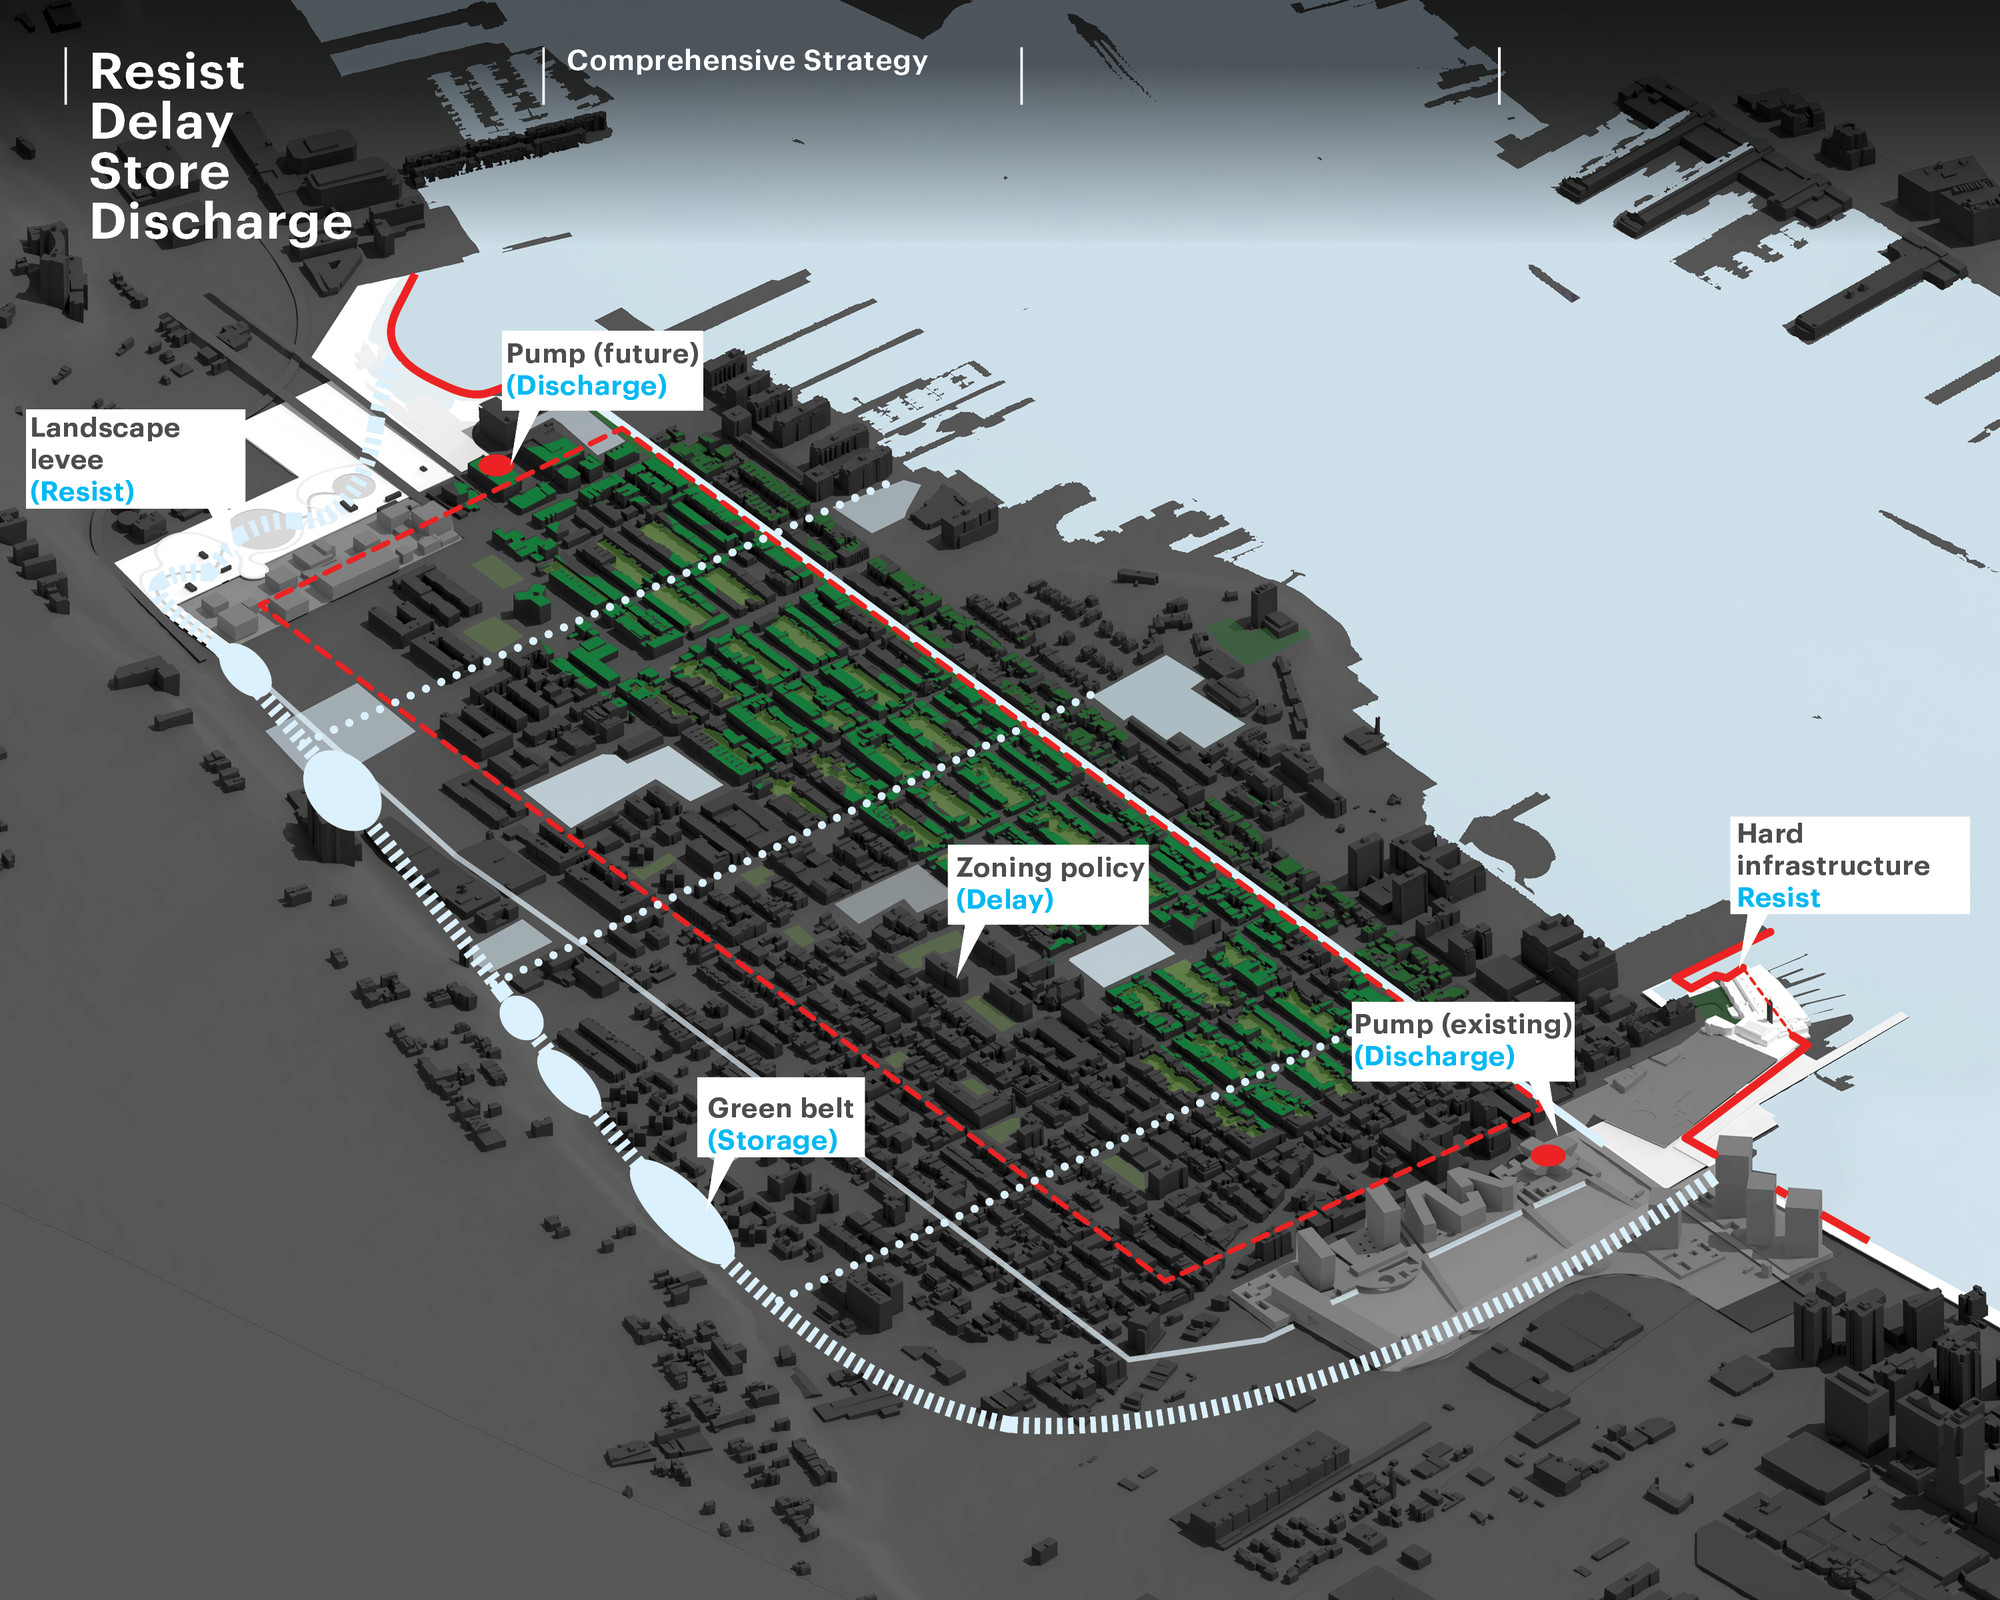 Resist, Delay, Store, Discharge: a comprehensive strategy for Hoboken. Image Courtesy of HUD